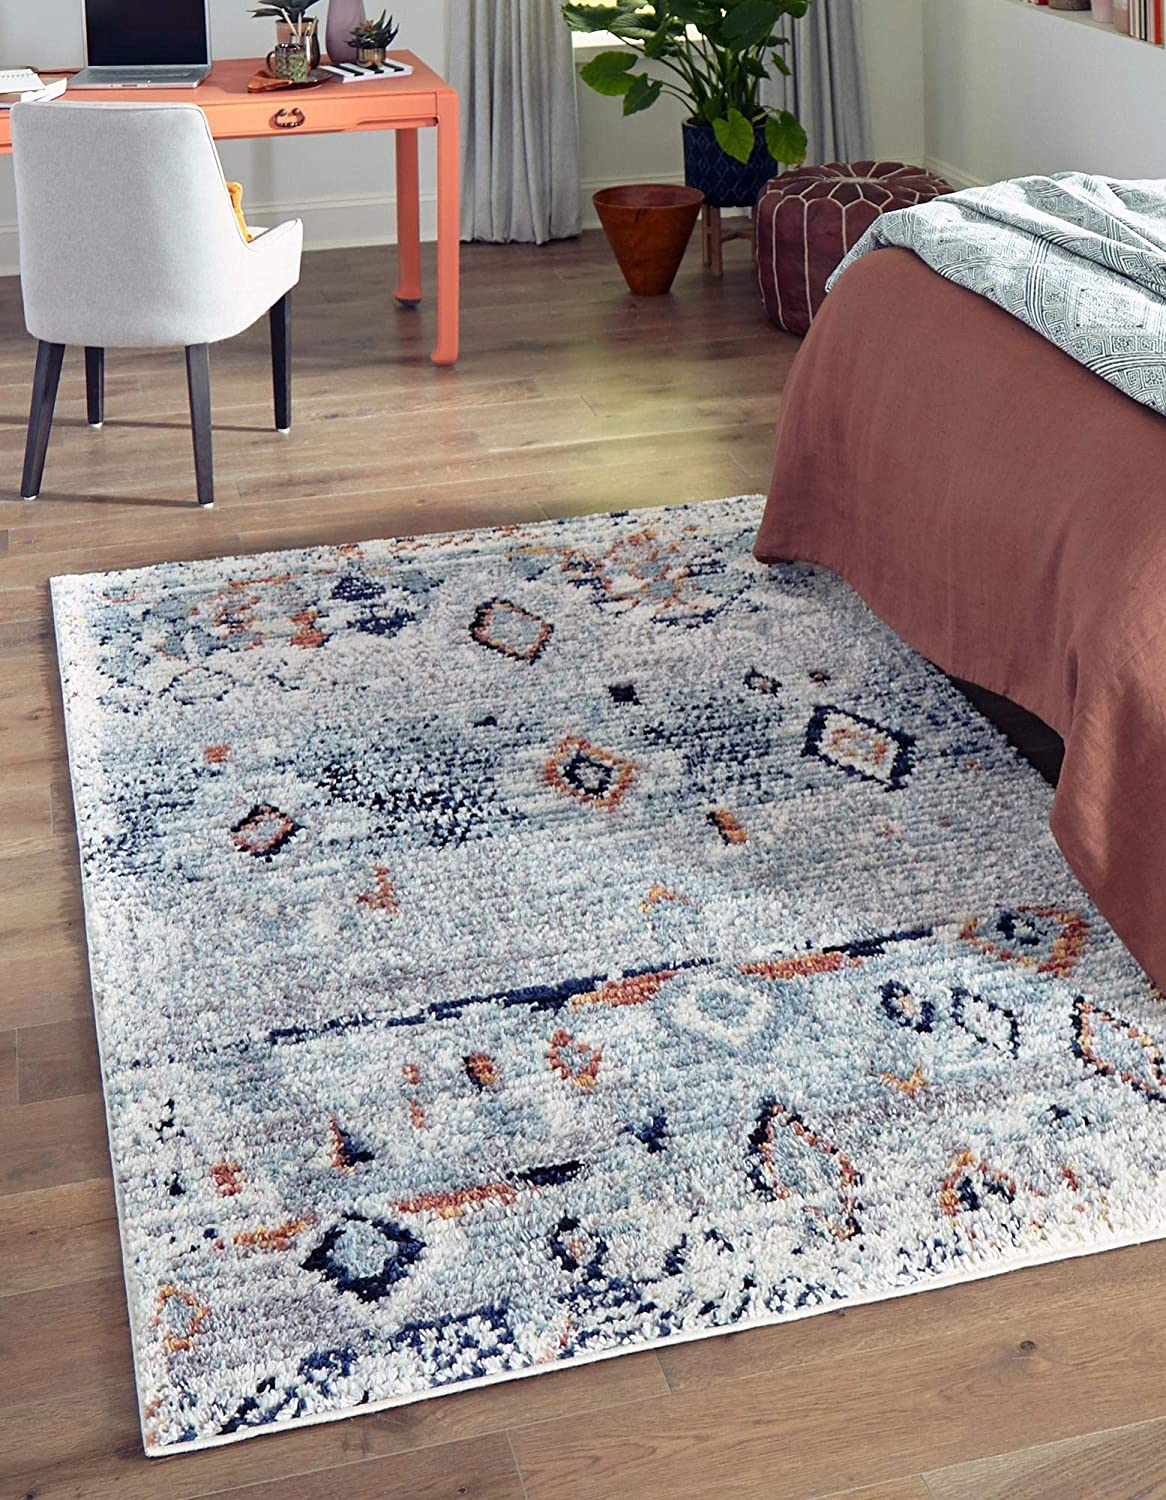 Max 80% OFF Baltimore Mall Rugs.com Morocco Collection Rug – 4' Light High-Pile Blue R 6' x